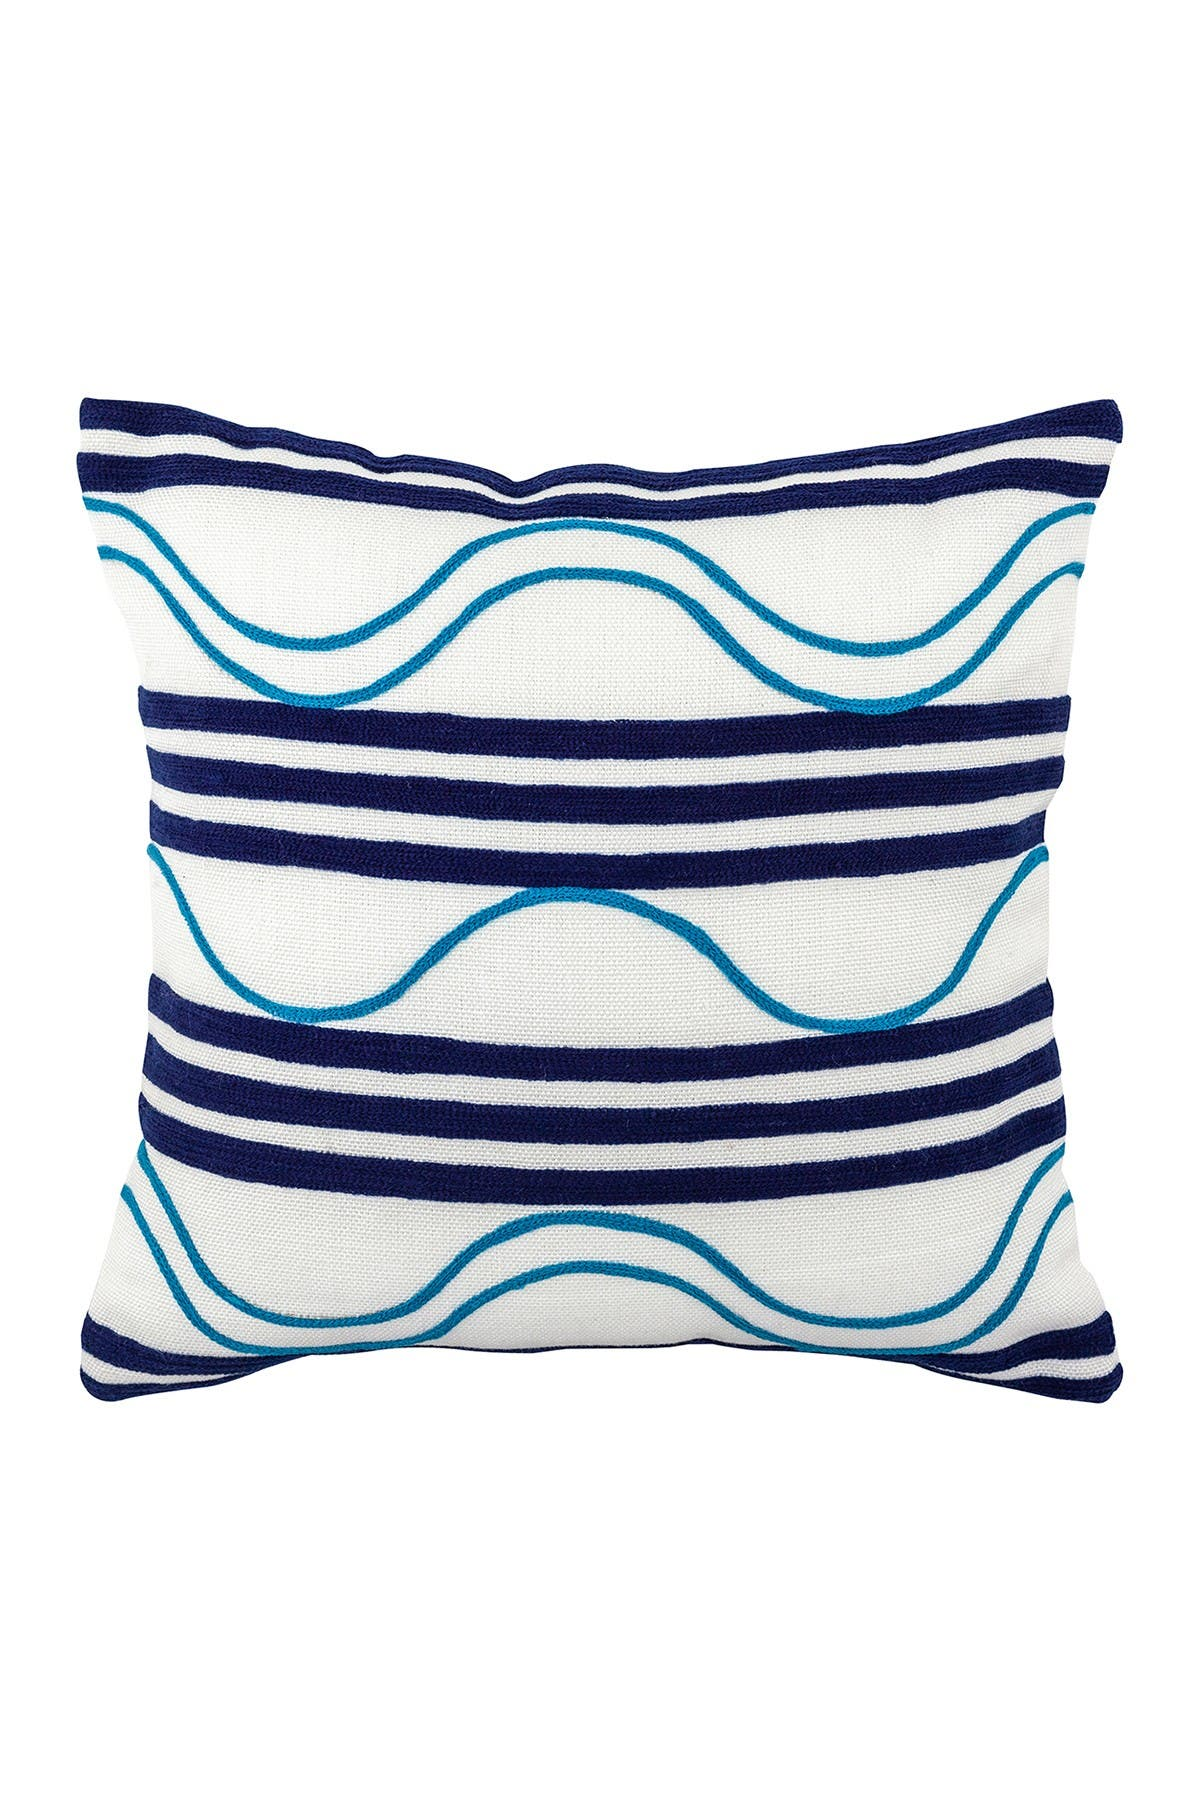 "Image of DIVINE HOME Embroidered Waves Outdoor Pillow - 17"" x 17"" - Navy/Aqua"